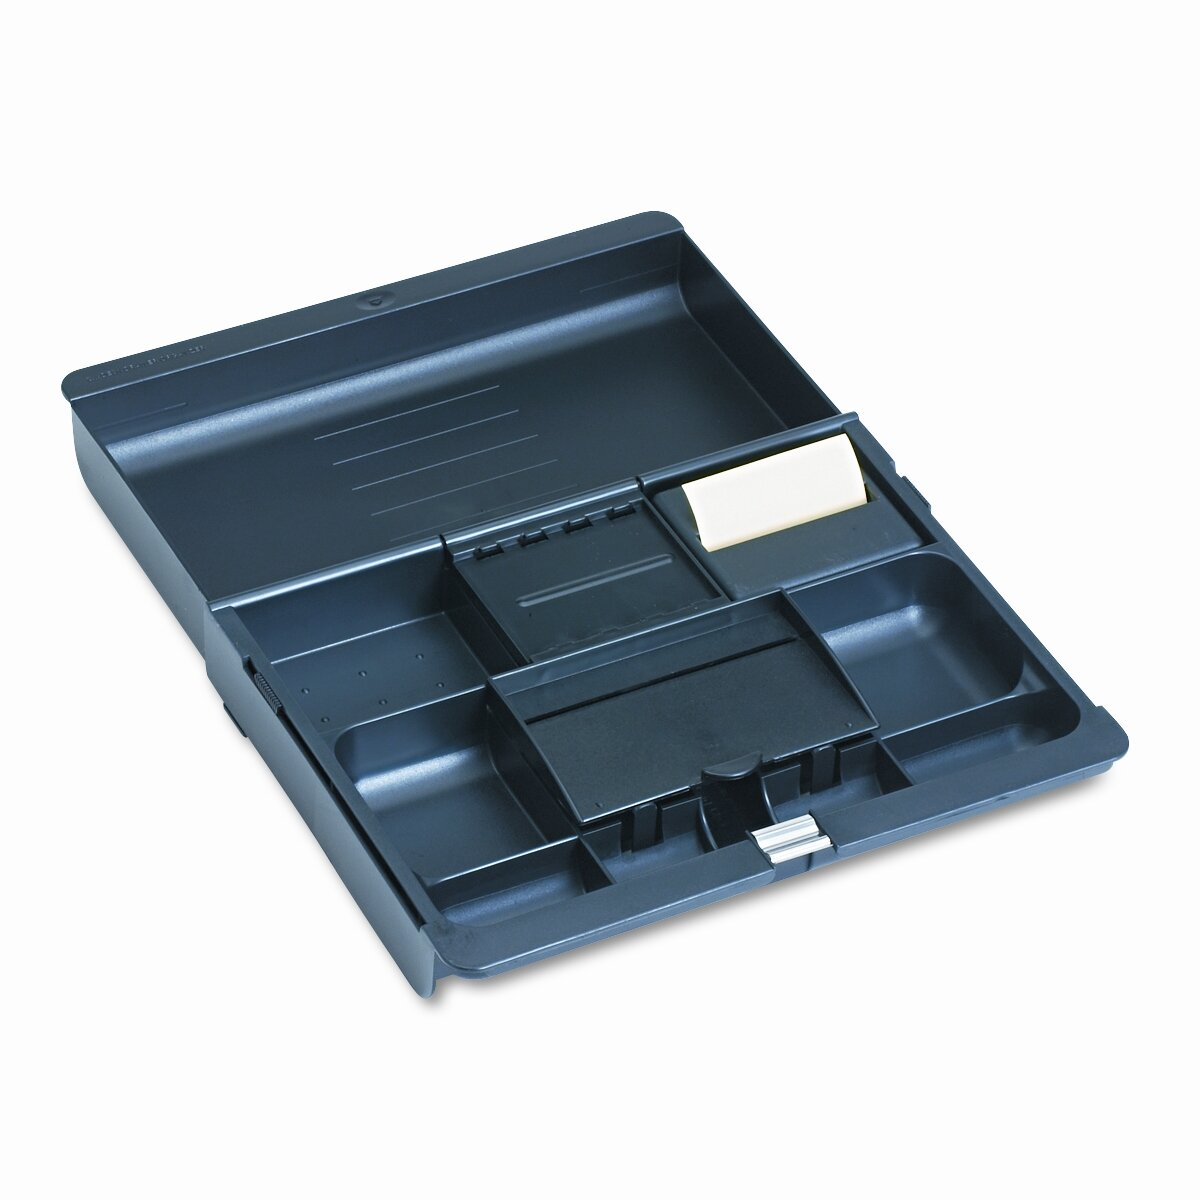 3m recycled plastic desk drawer organizer tray reviews - Acrylic desk drawer organizer ...